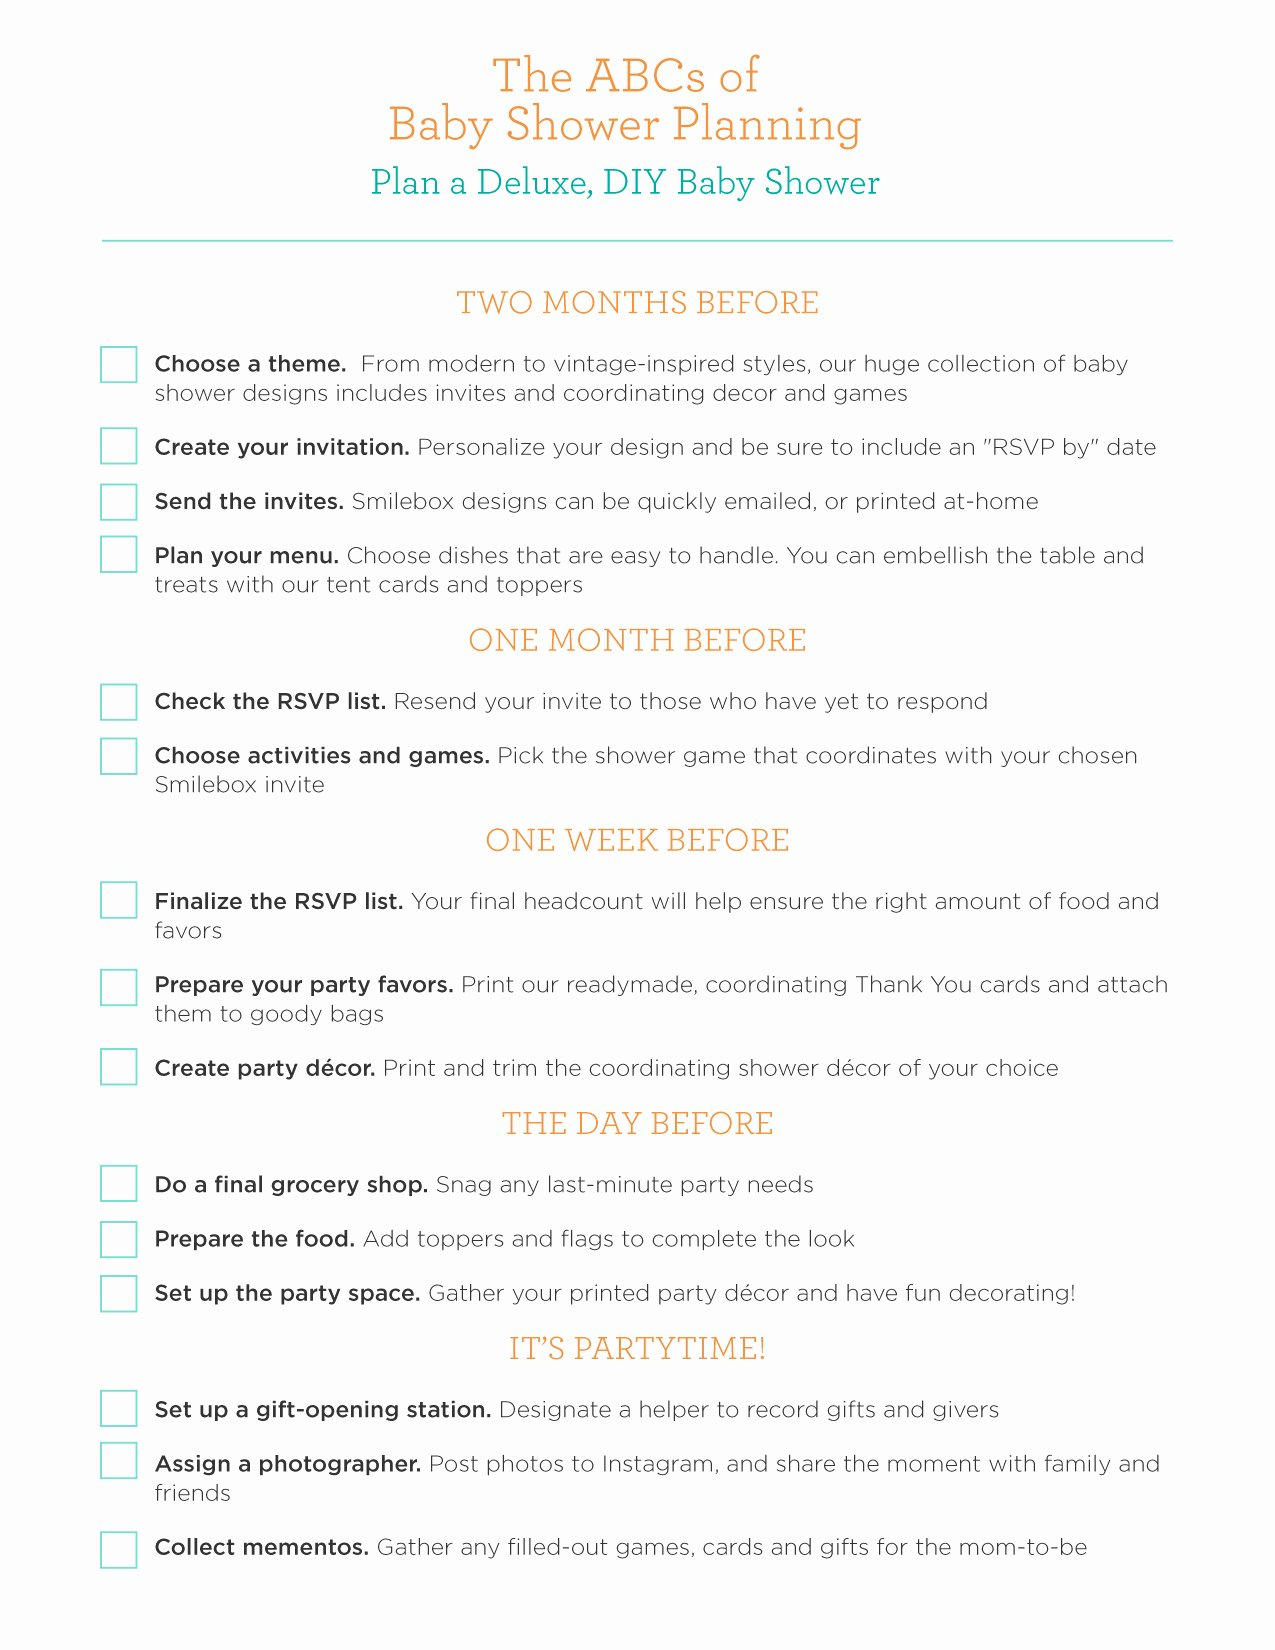 Baby Shower Planning List Awesome 24 Helpful Baby Shower Checklists